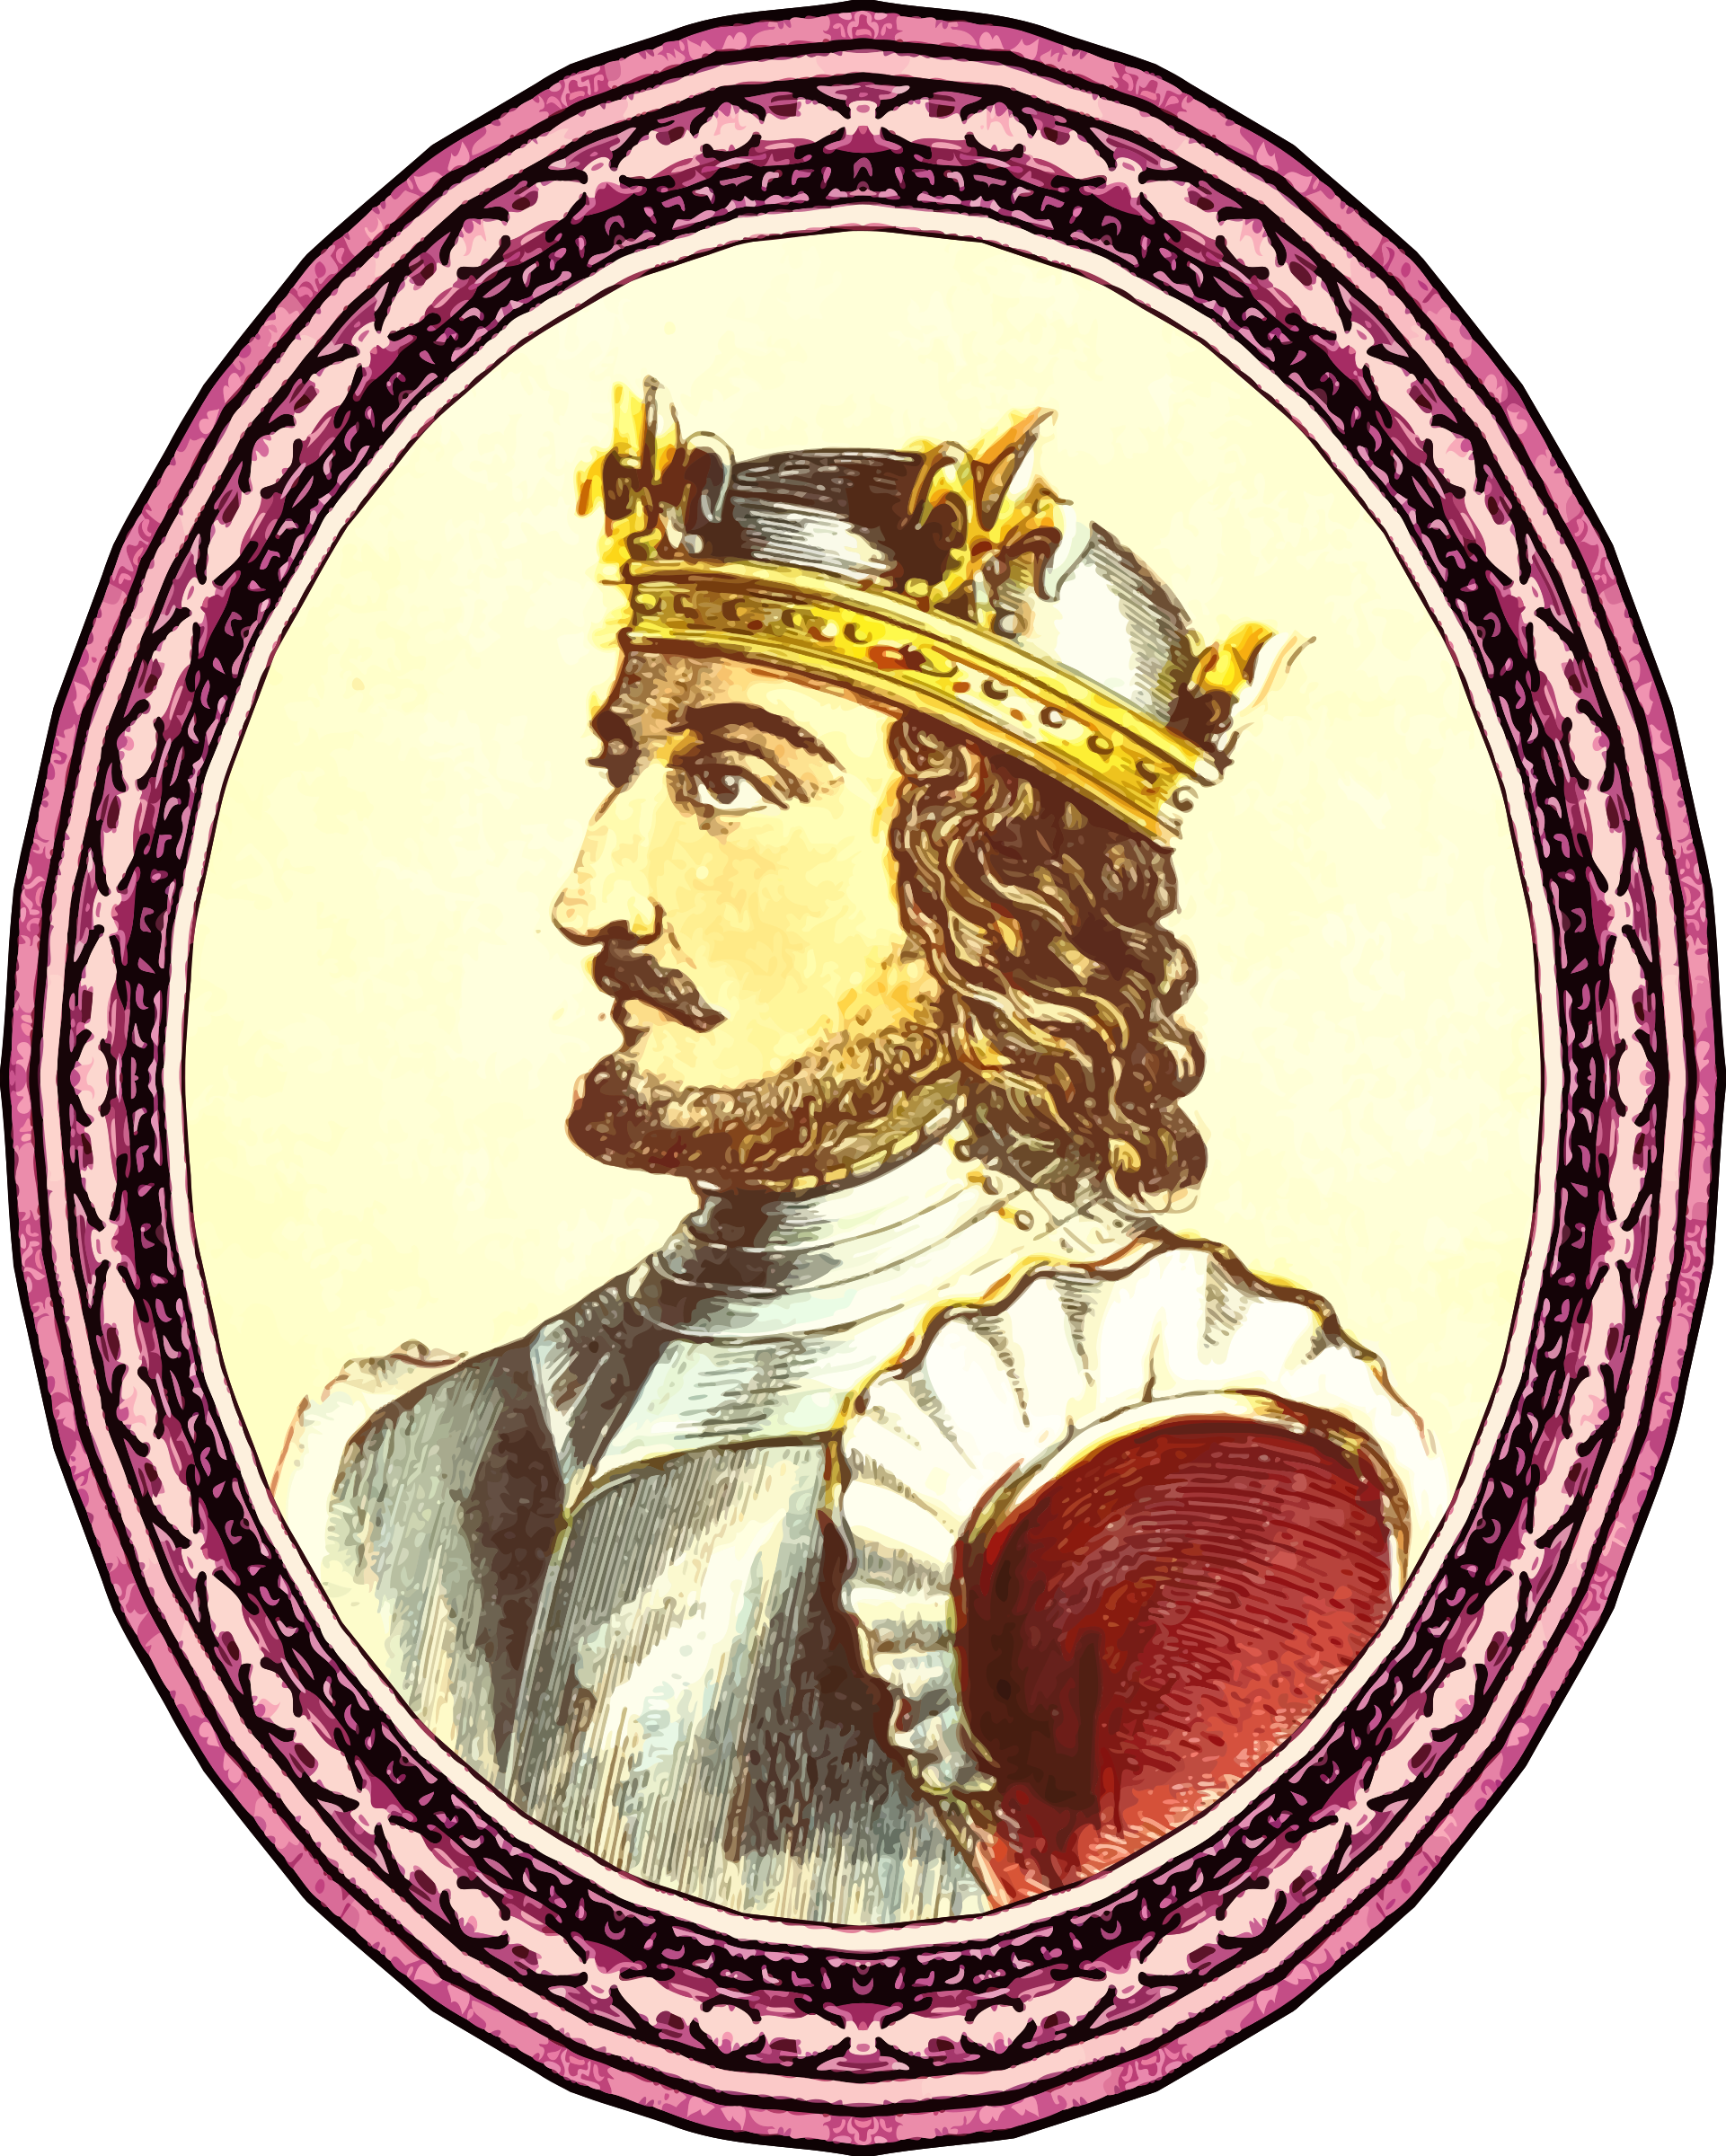 King Stephen (framed) by Firkin